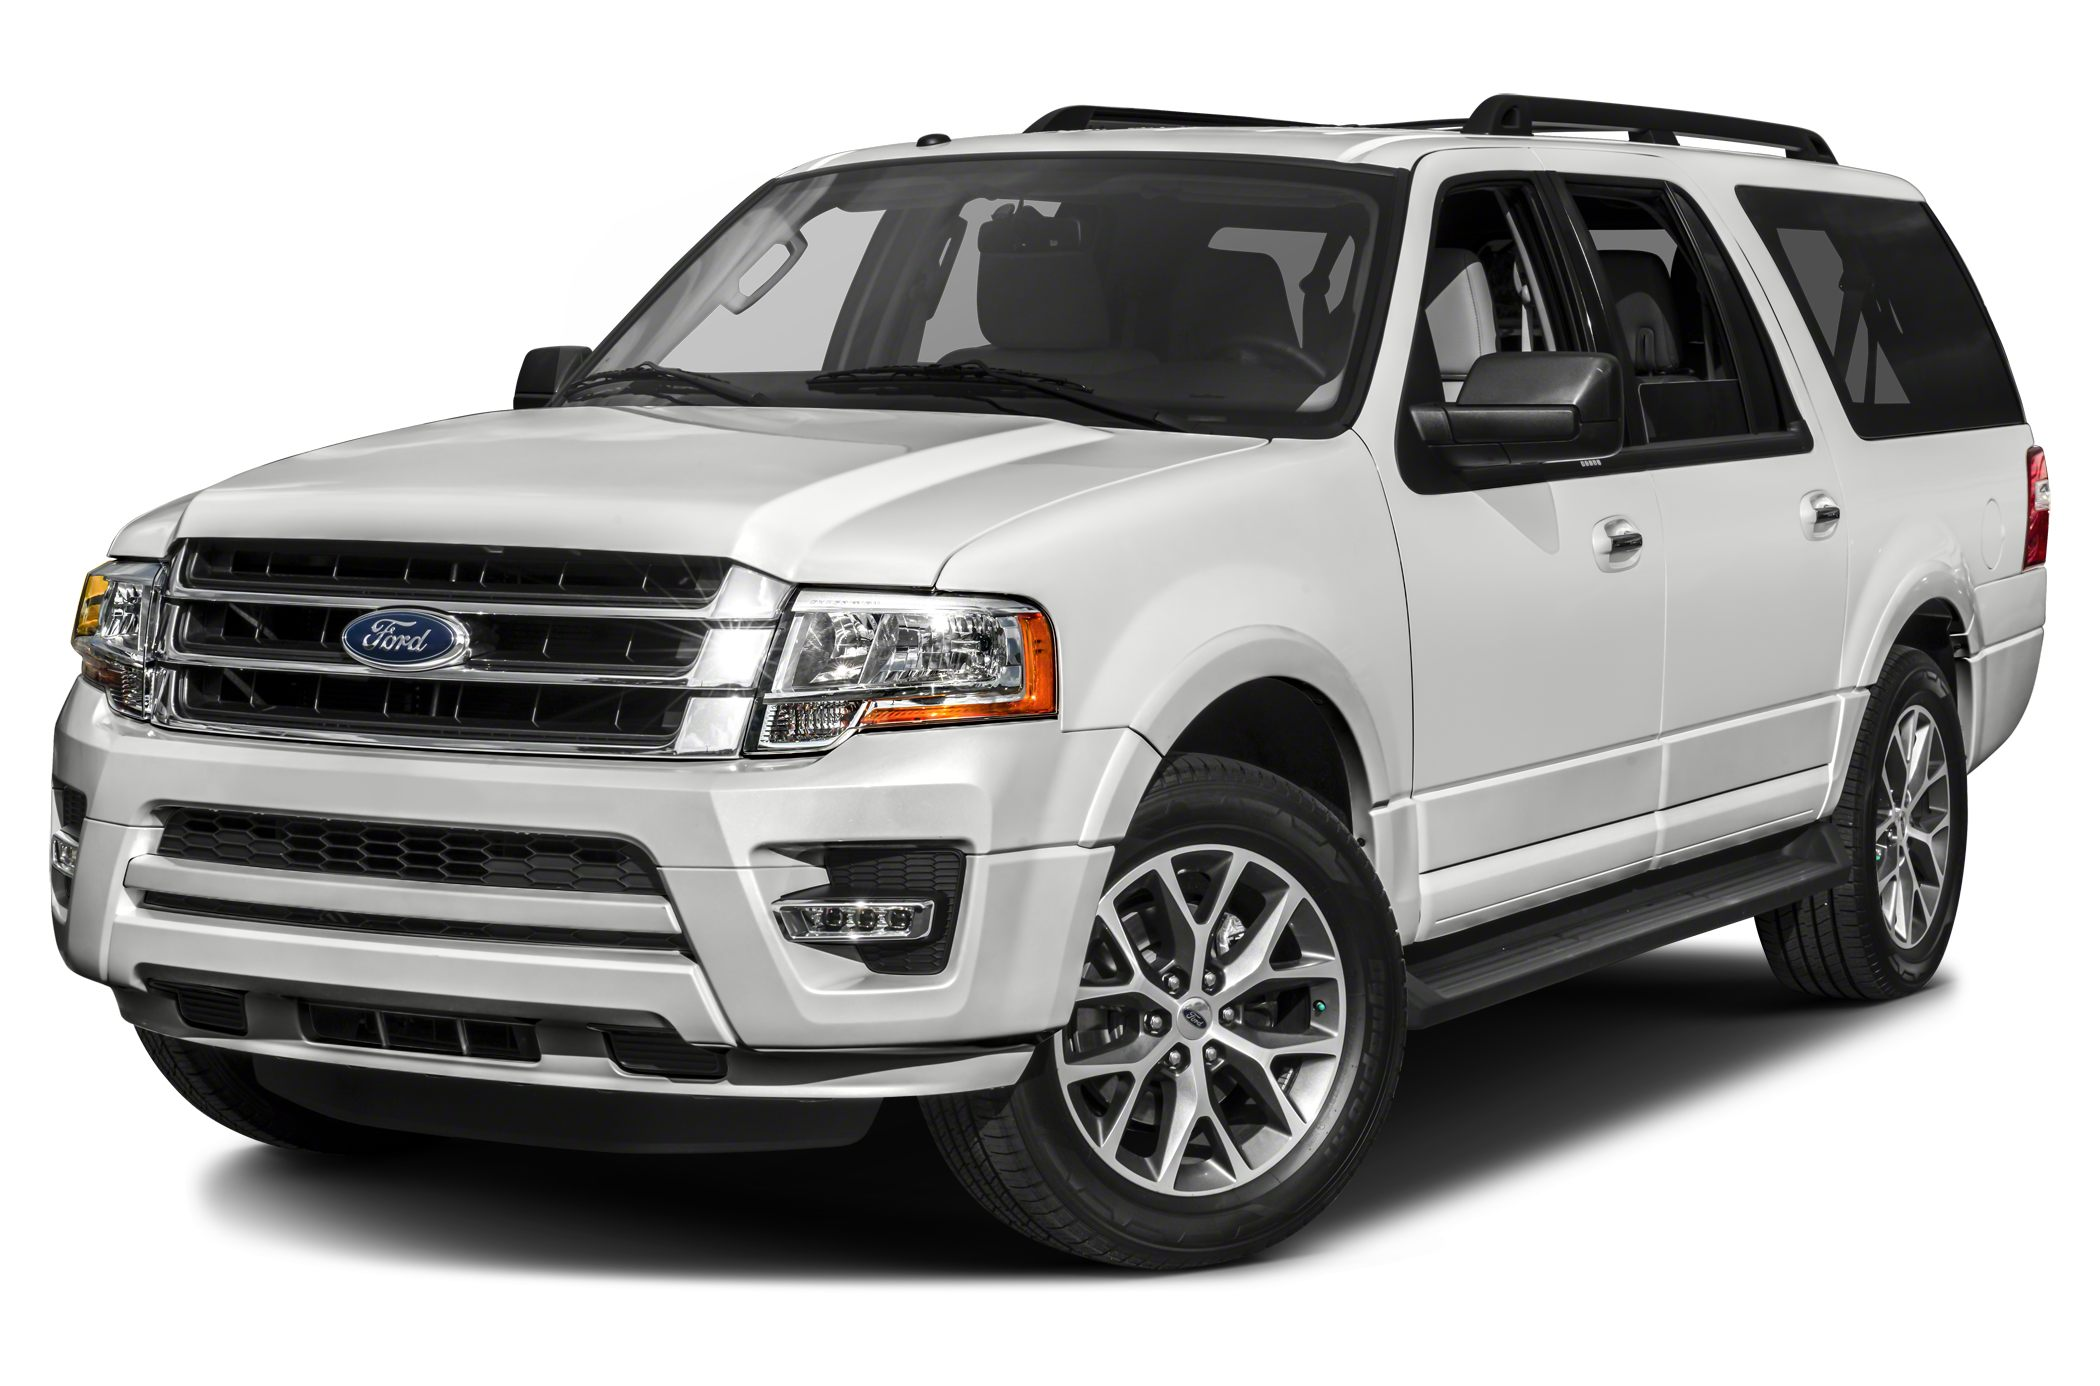 Xlt 4dr 4x2 2016 Ford Expedition El Photos